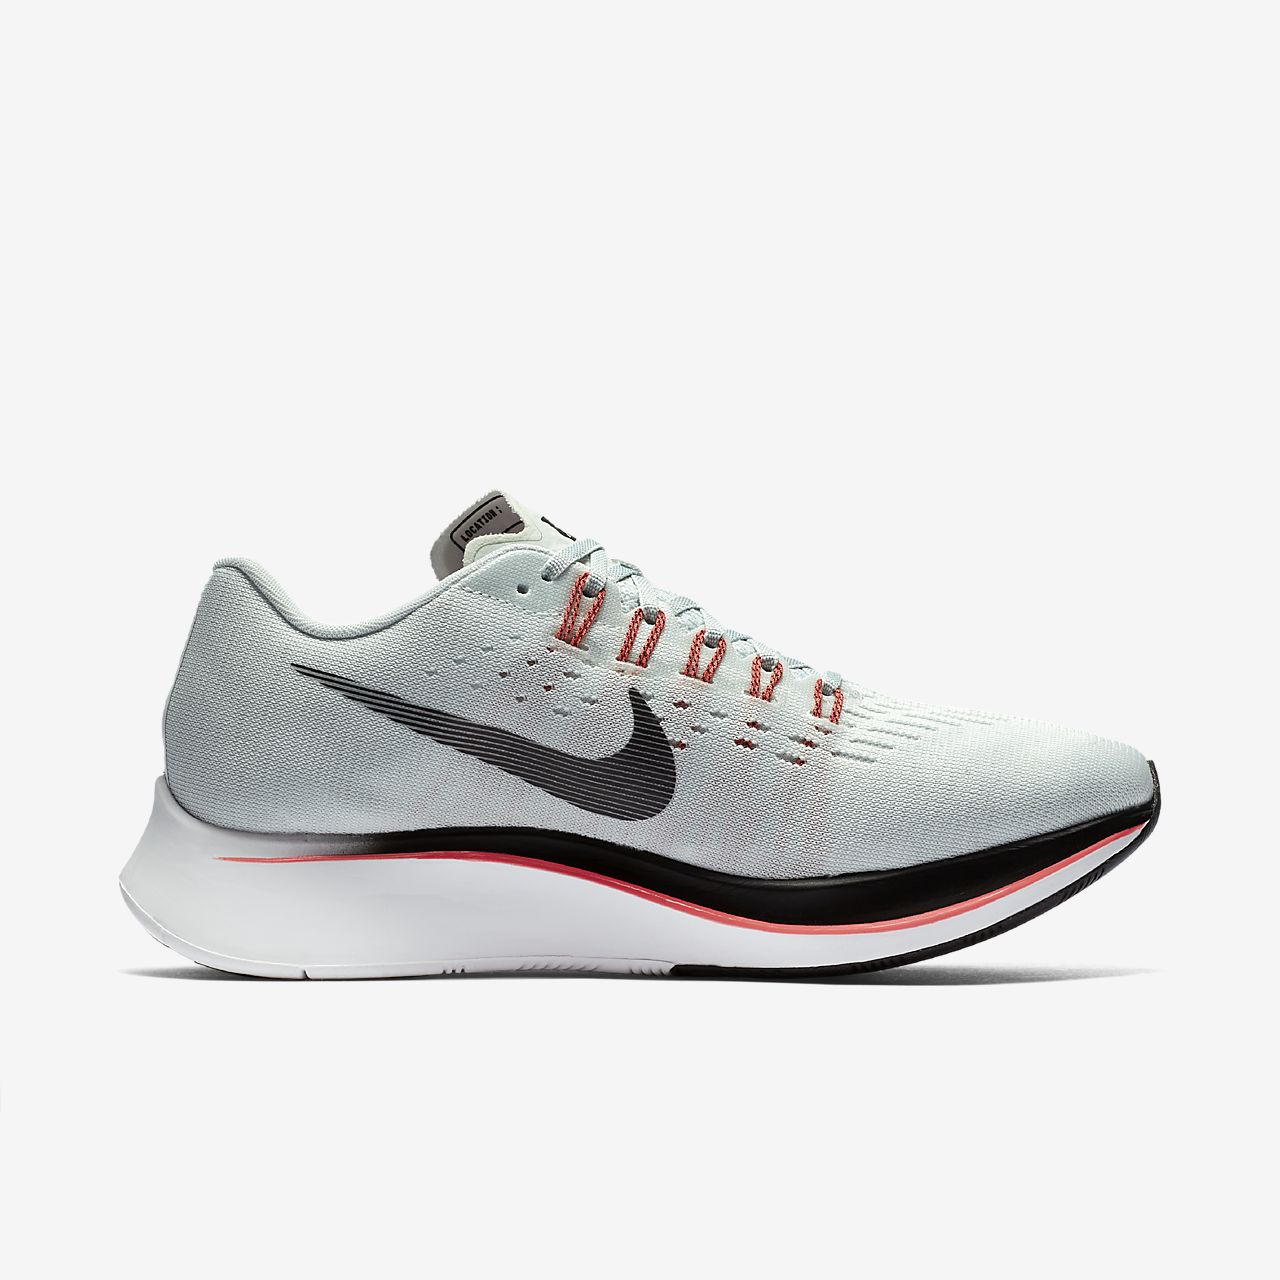 65d1bd7f5e8 Low Resolution Nike Zoom Fly Men s Running Shoe Nike Zoom Fly Men s Running  Shoe